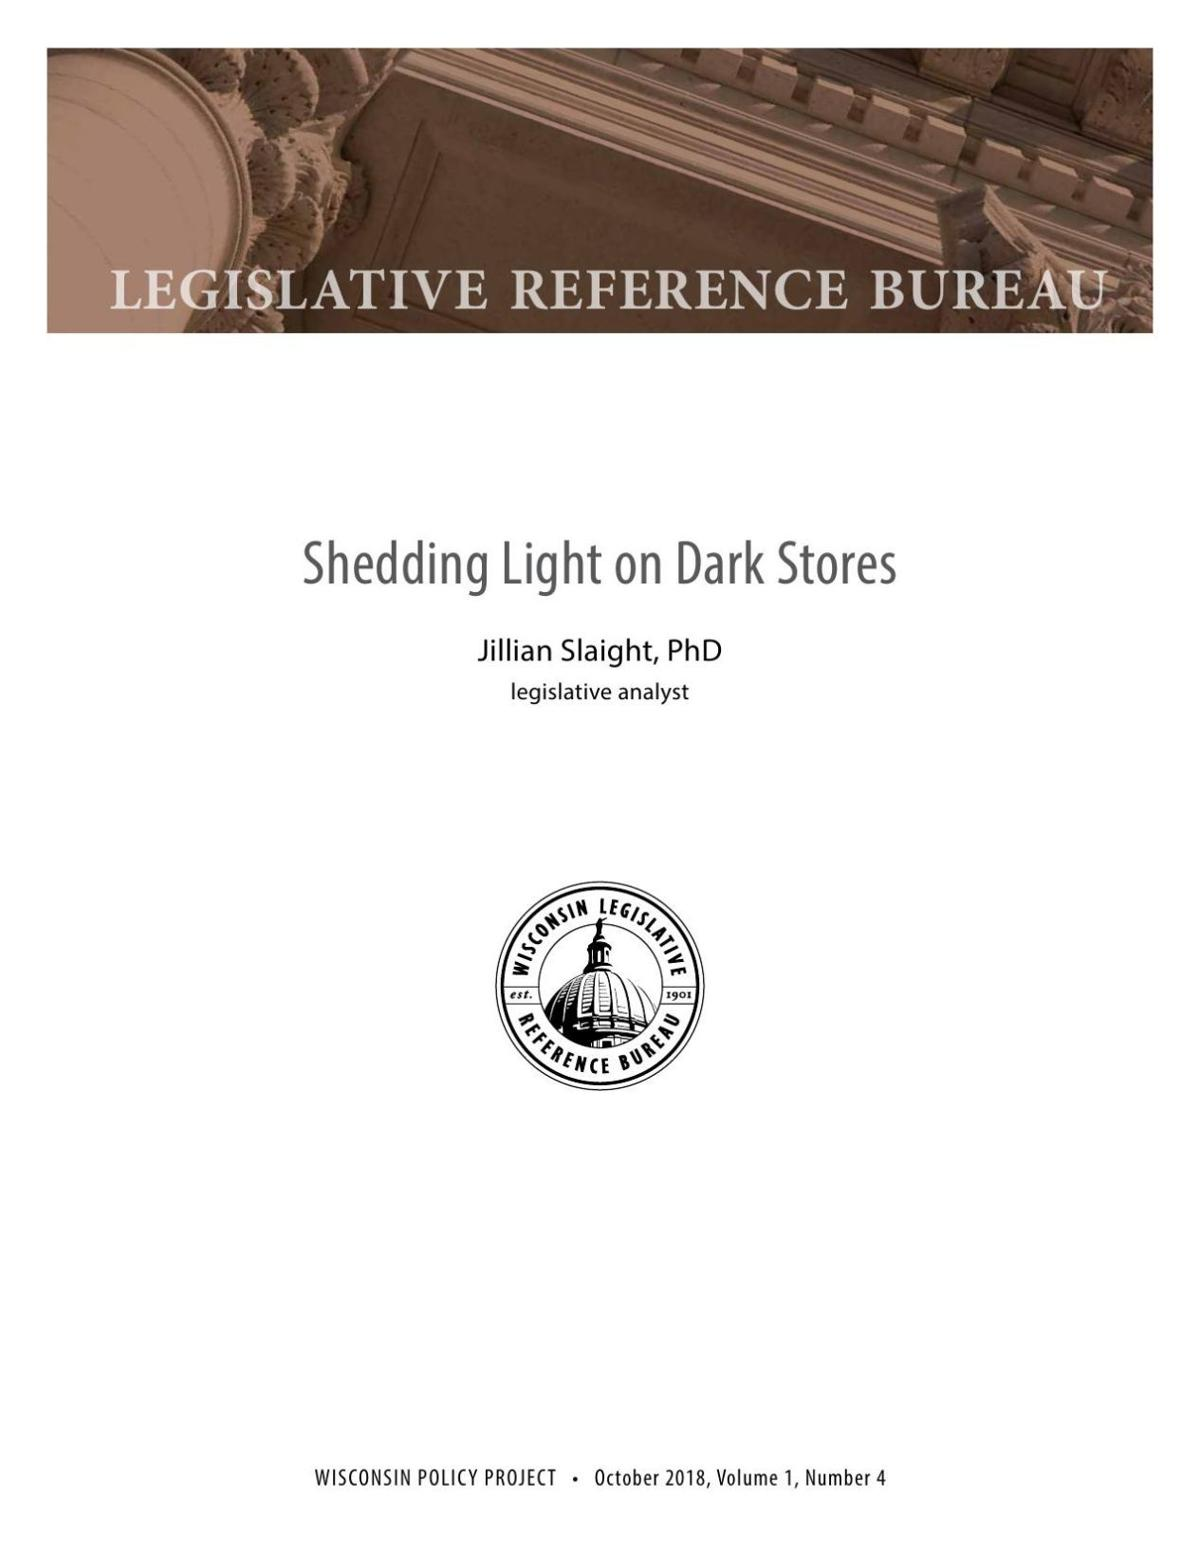 LRB report on 'dark stores' taxation